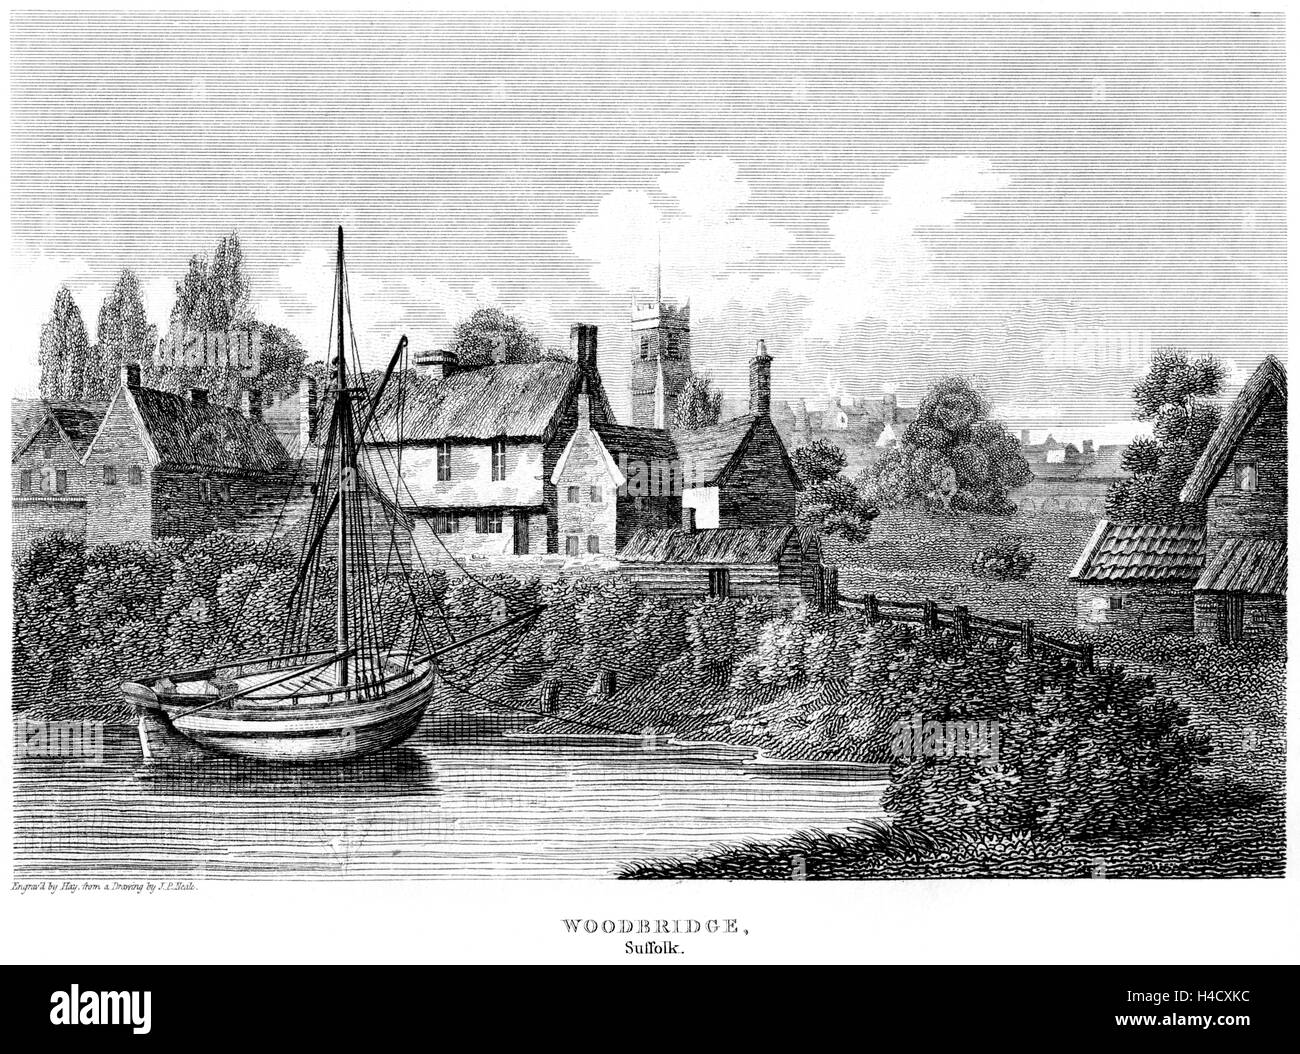 An engraving of the village of Woodbridge, Suffolk scanned at high resolution from a book printed in 1812. Believed - Stock Image